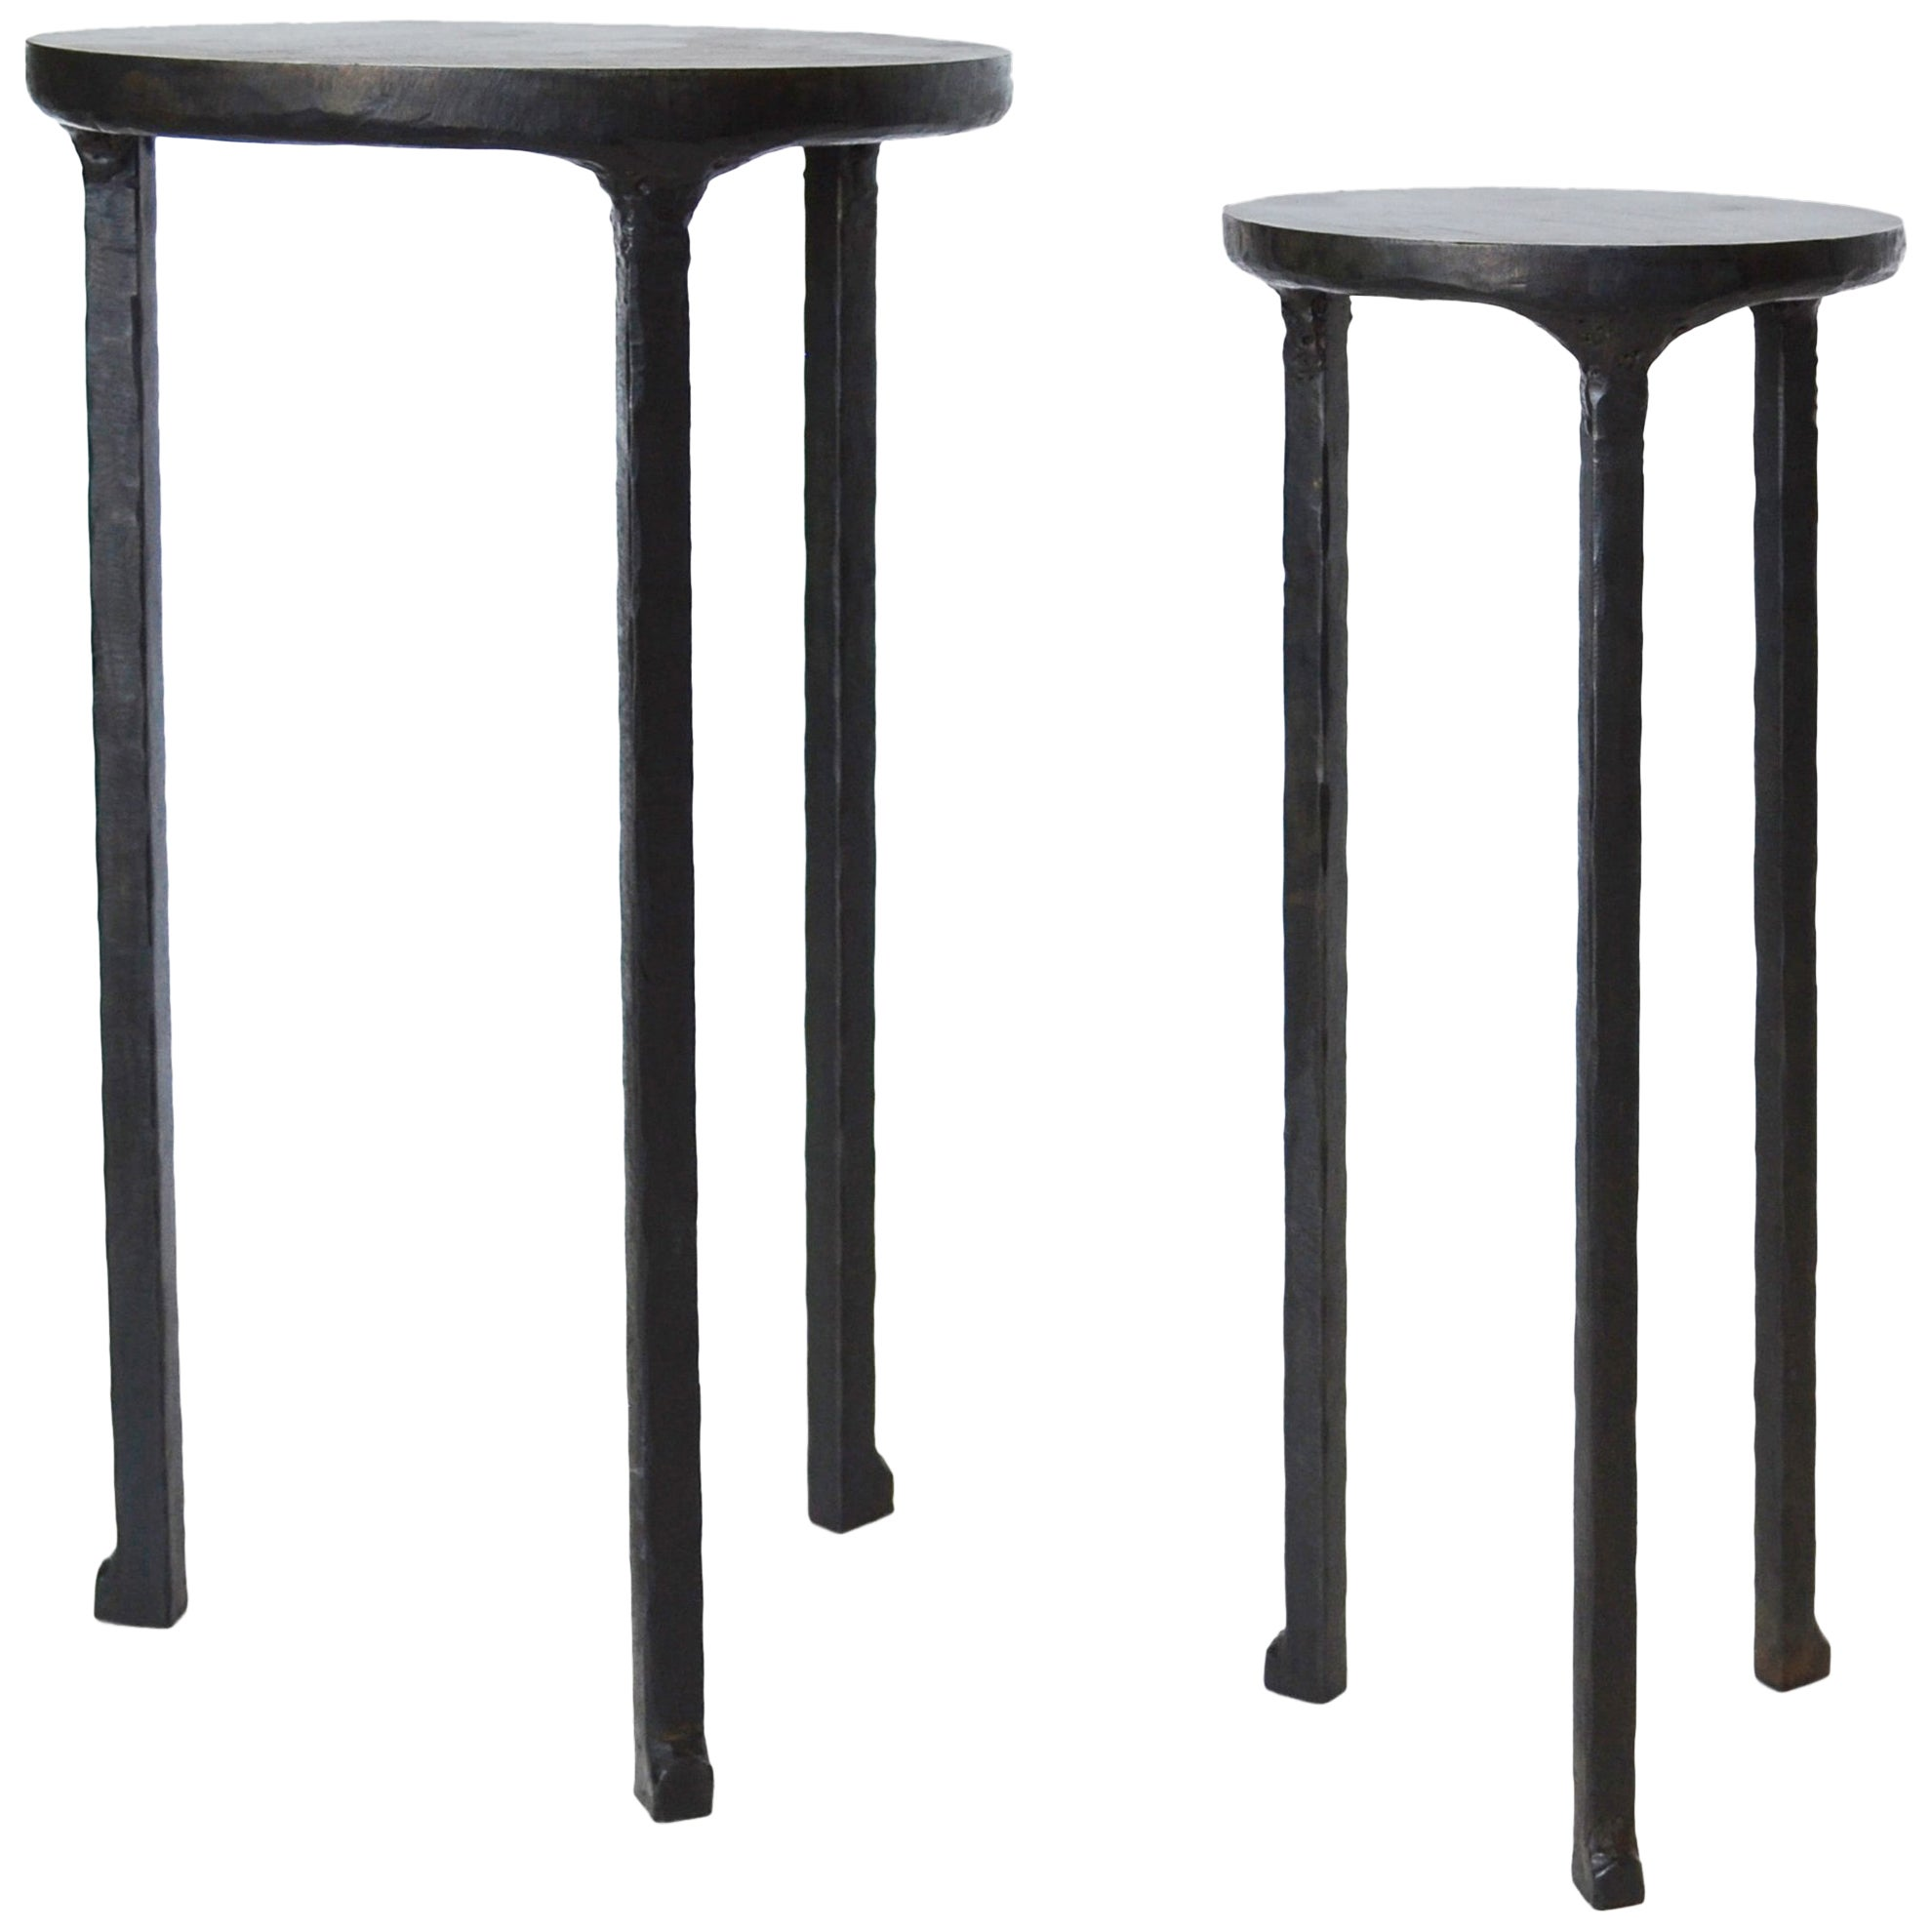 Cocktail Table Pair Modern Hand-Shaped Round Handmade Blackened and Waxed Steel